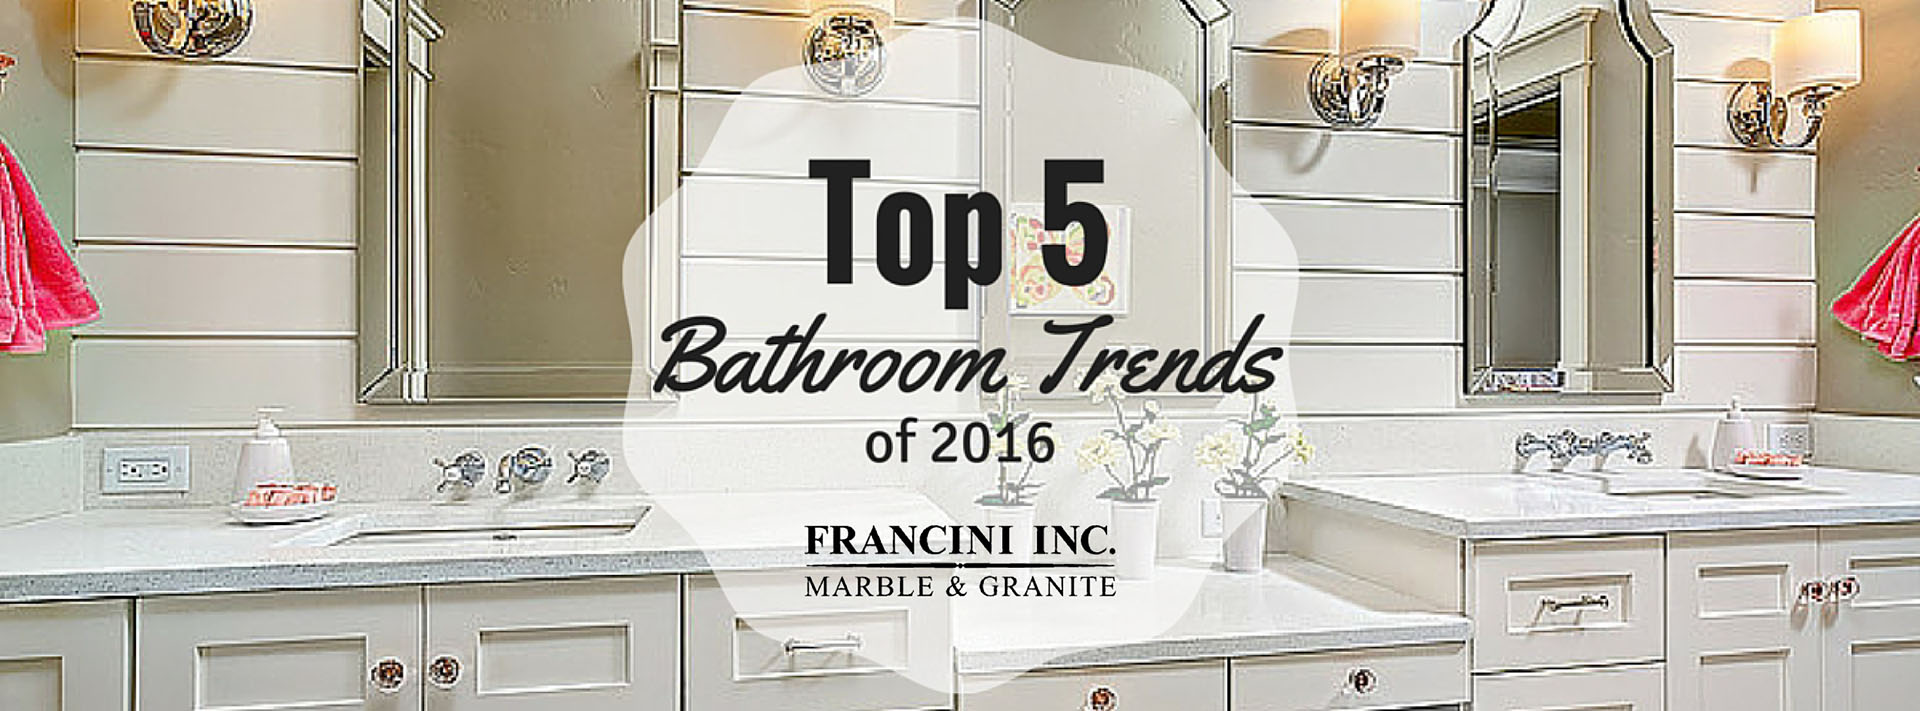 Top 5 Bathroom Trends for 2016